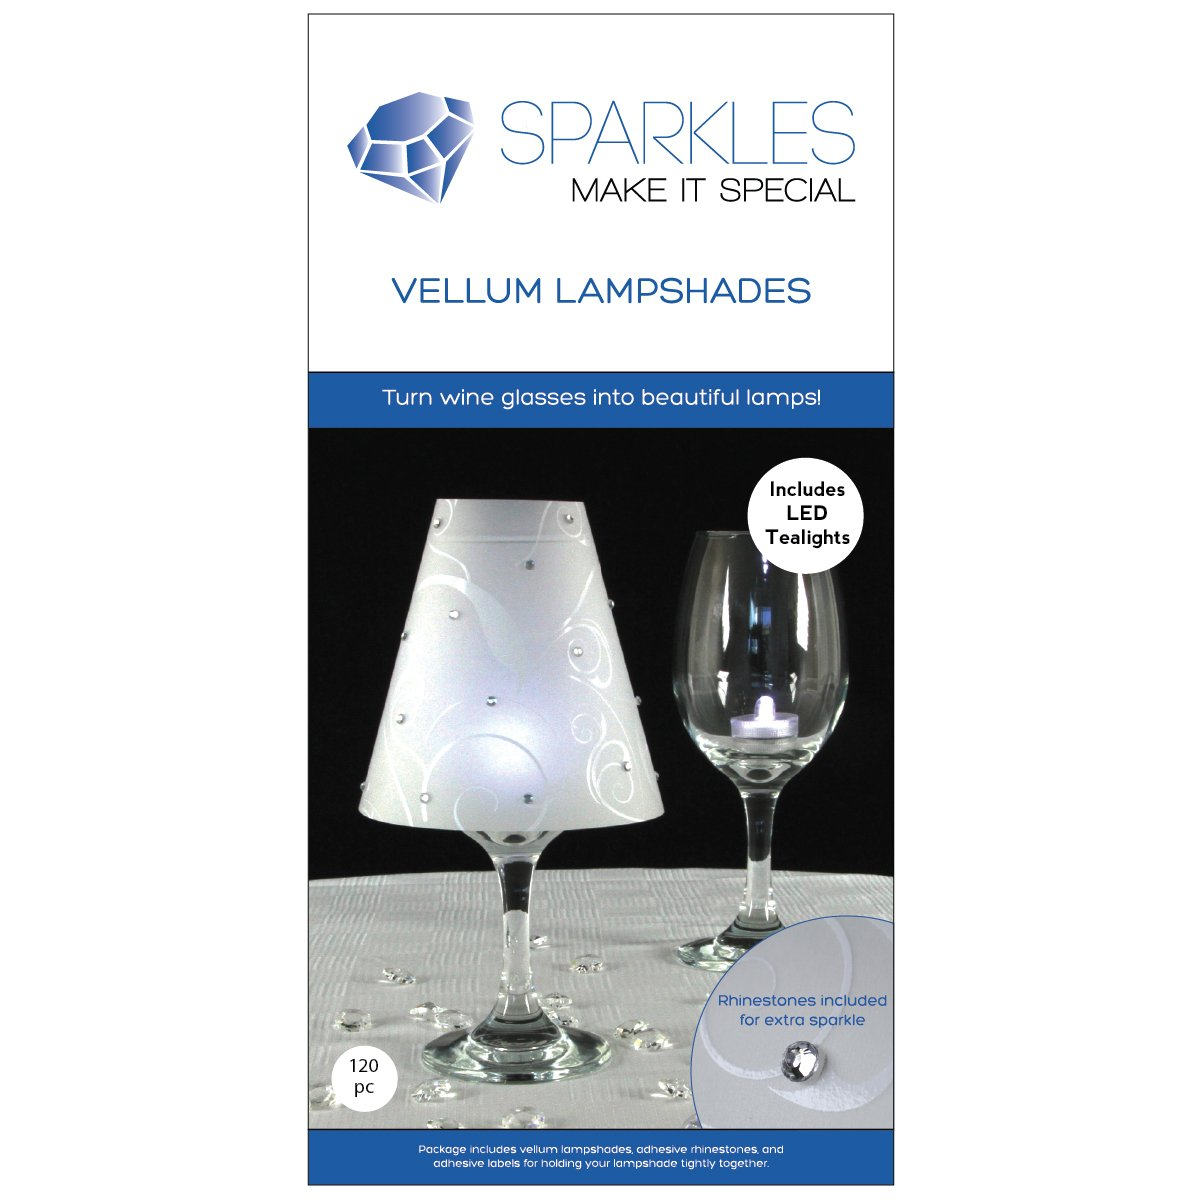 Sparkles Make It Special 120 pc Wine Glass Lamp Shades with Rhinestones and LED Tea Lights - Wedding Table Decoration - White Vellum Swirl Print by Sparkles Make It Special